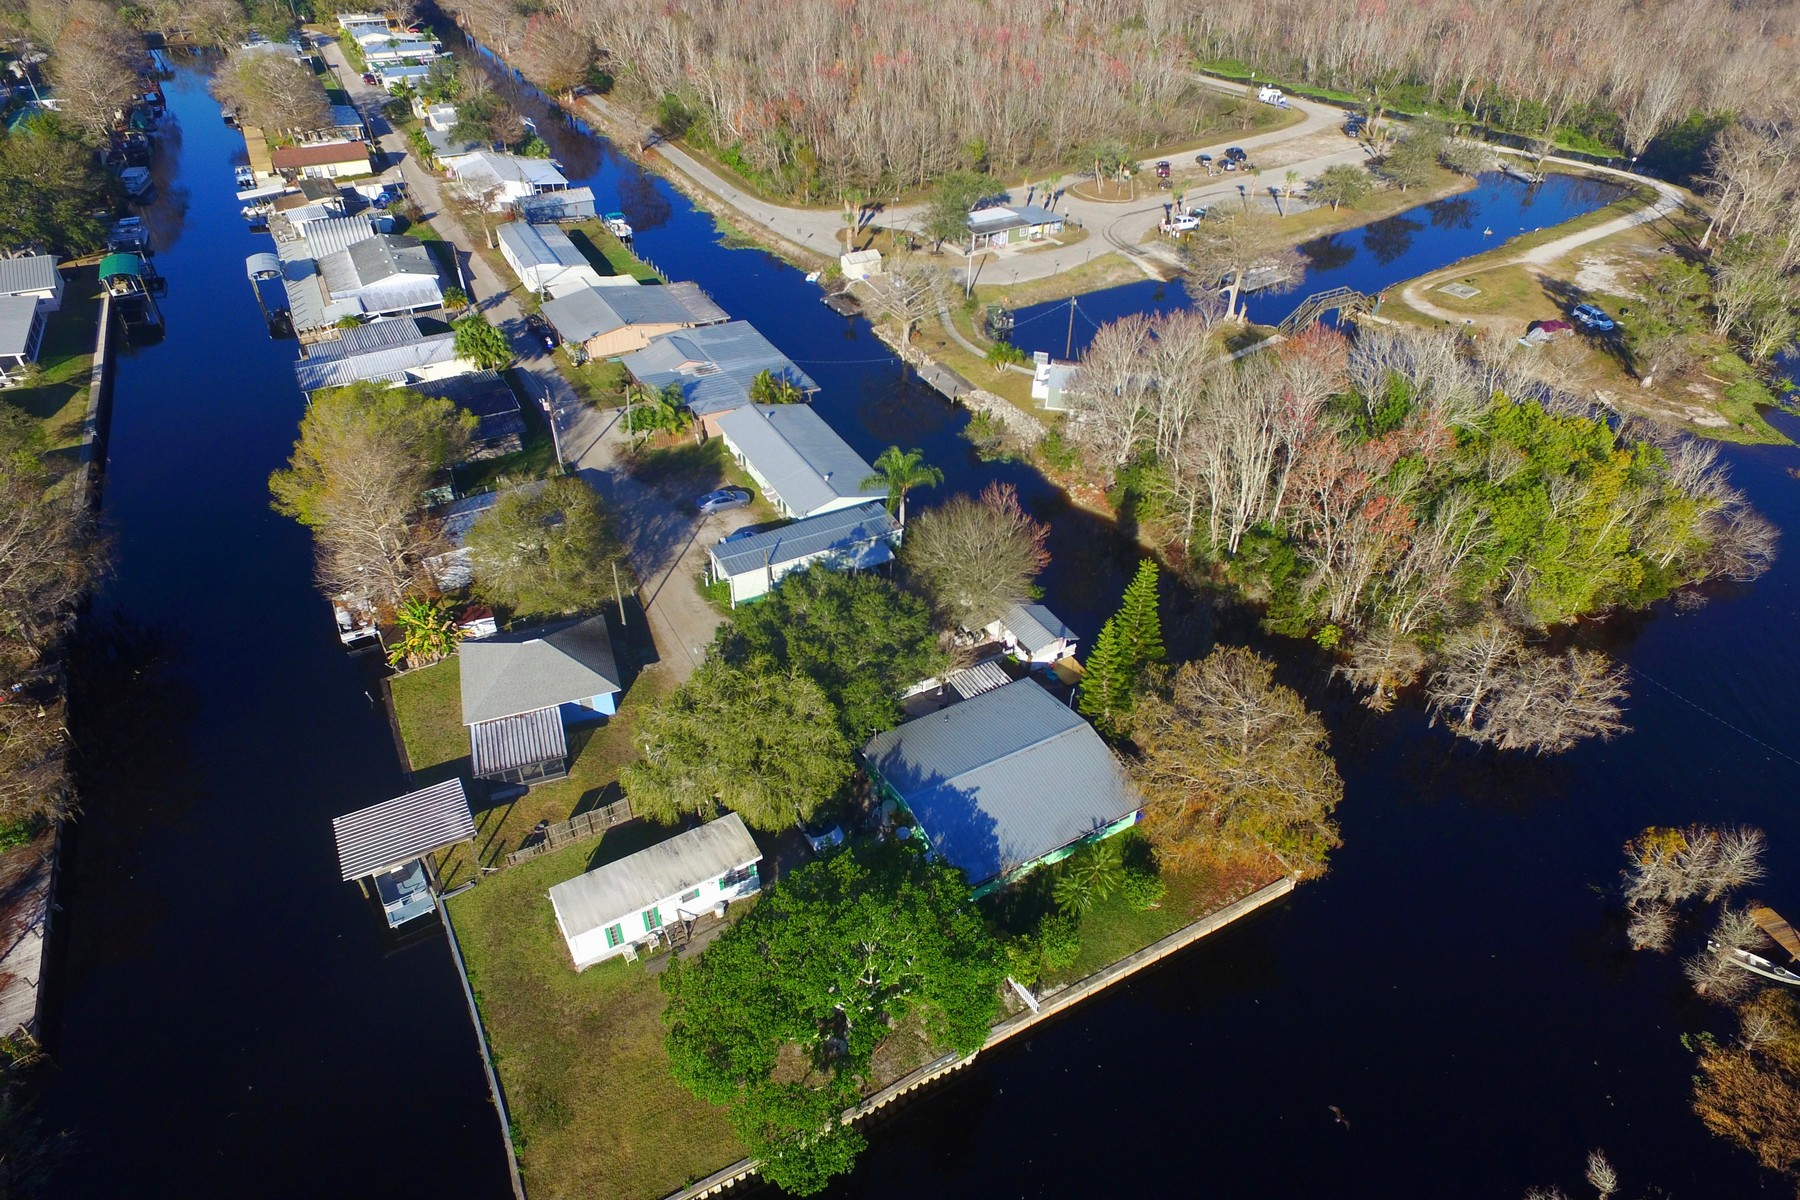 Property for Sale at Blue Cypress Lake is the Perfect Place For Those Yearning for a Slower Pace. 21704 73rd Manor Vero Beach, Florida 32966 United States